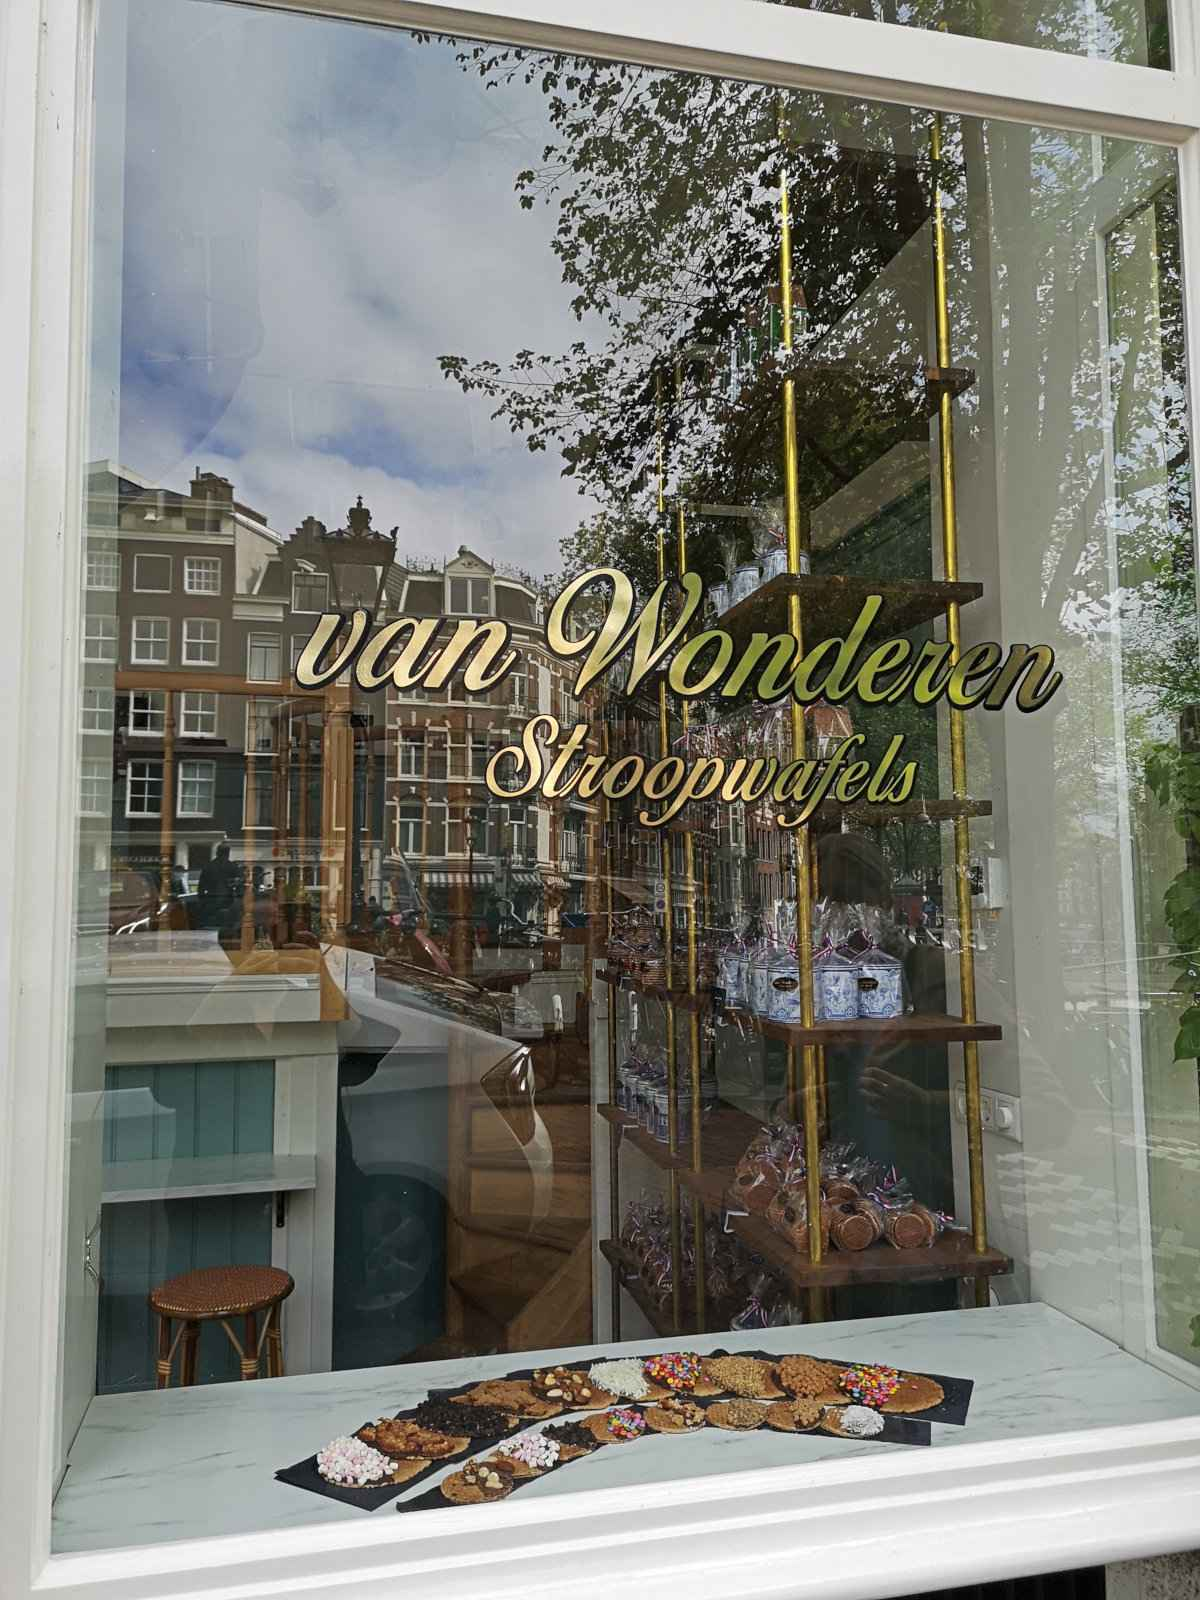 van Wonderen Stroopwafels is one of the coolest places to eat in Amsterdam